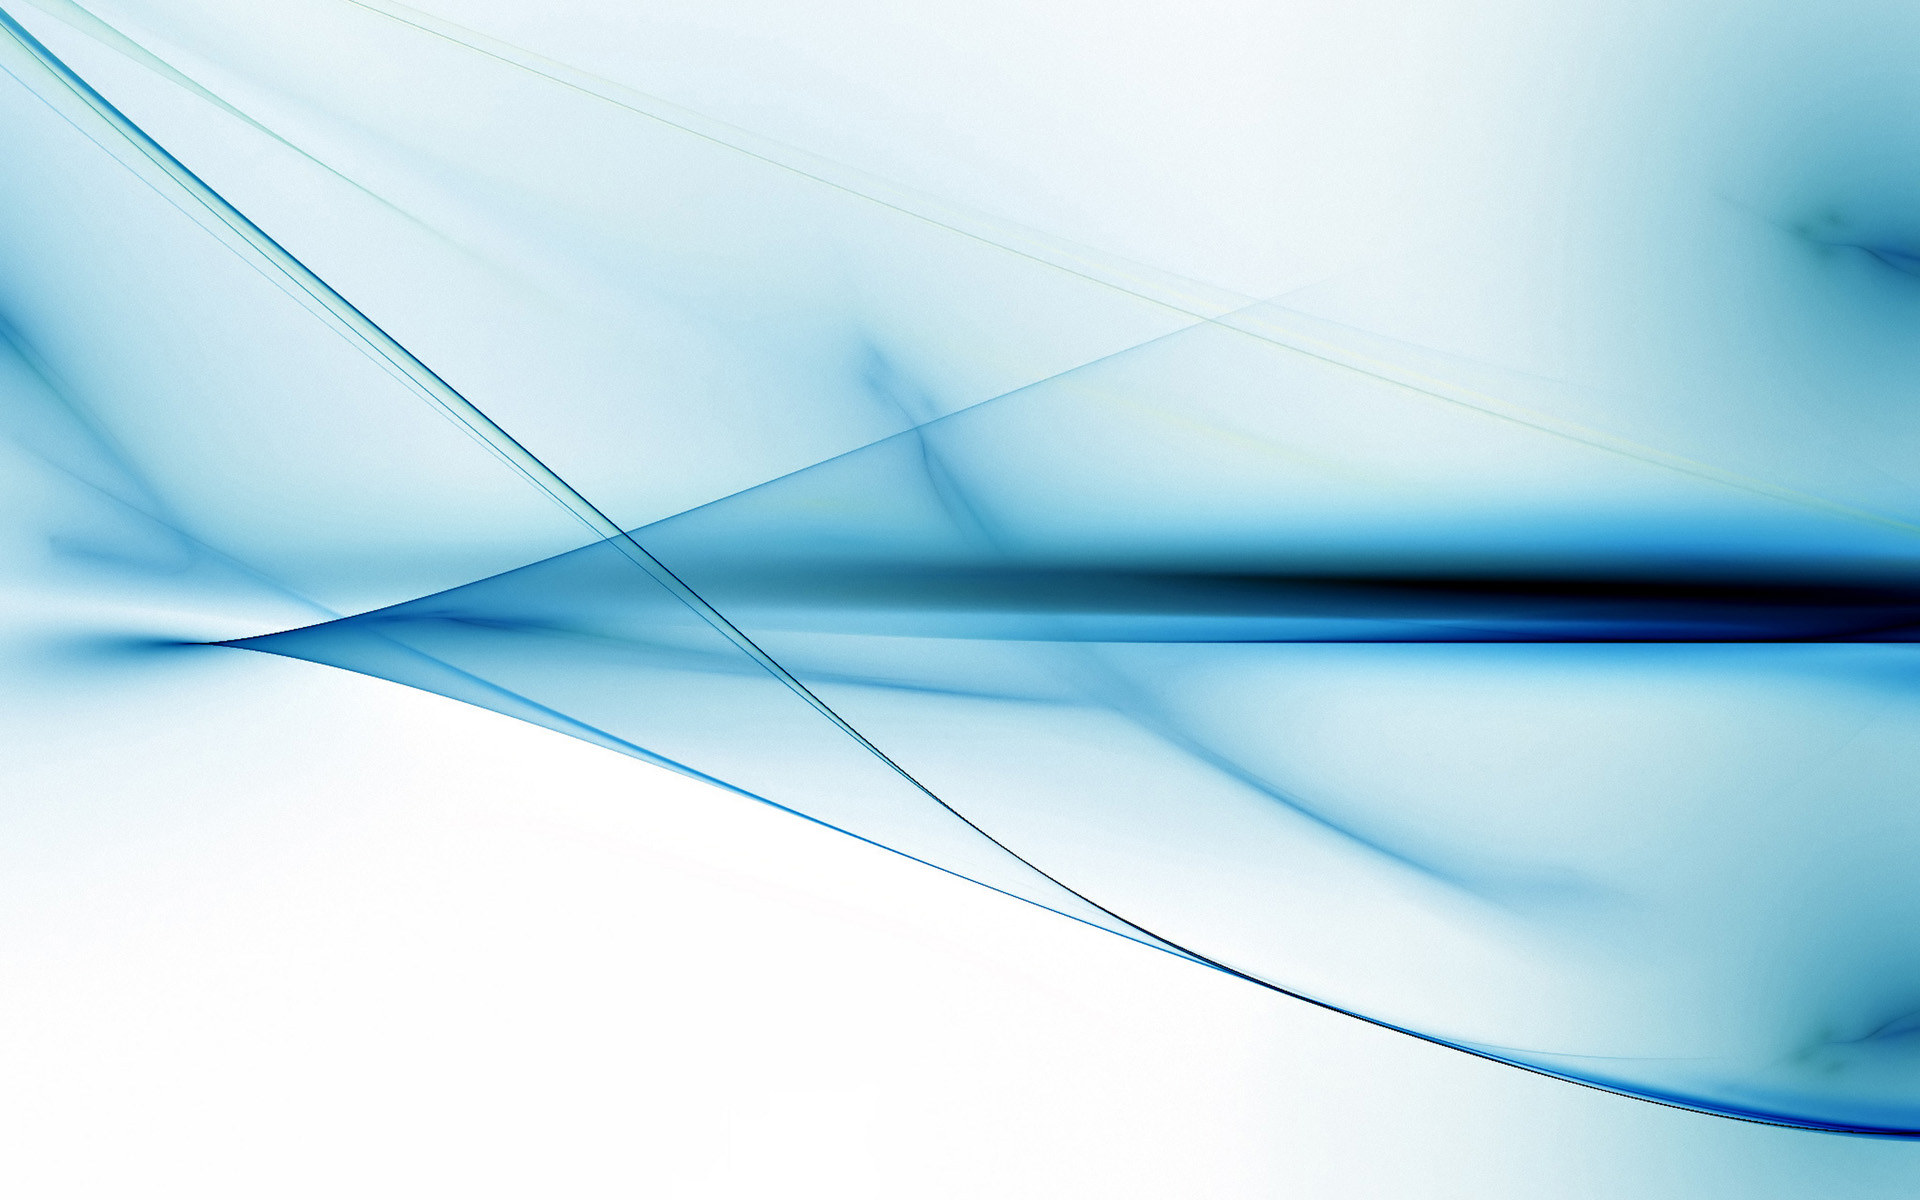 Free Abstract Waves Wallpaper 36339 1920x1200 px